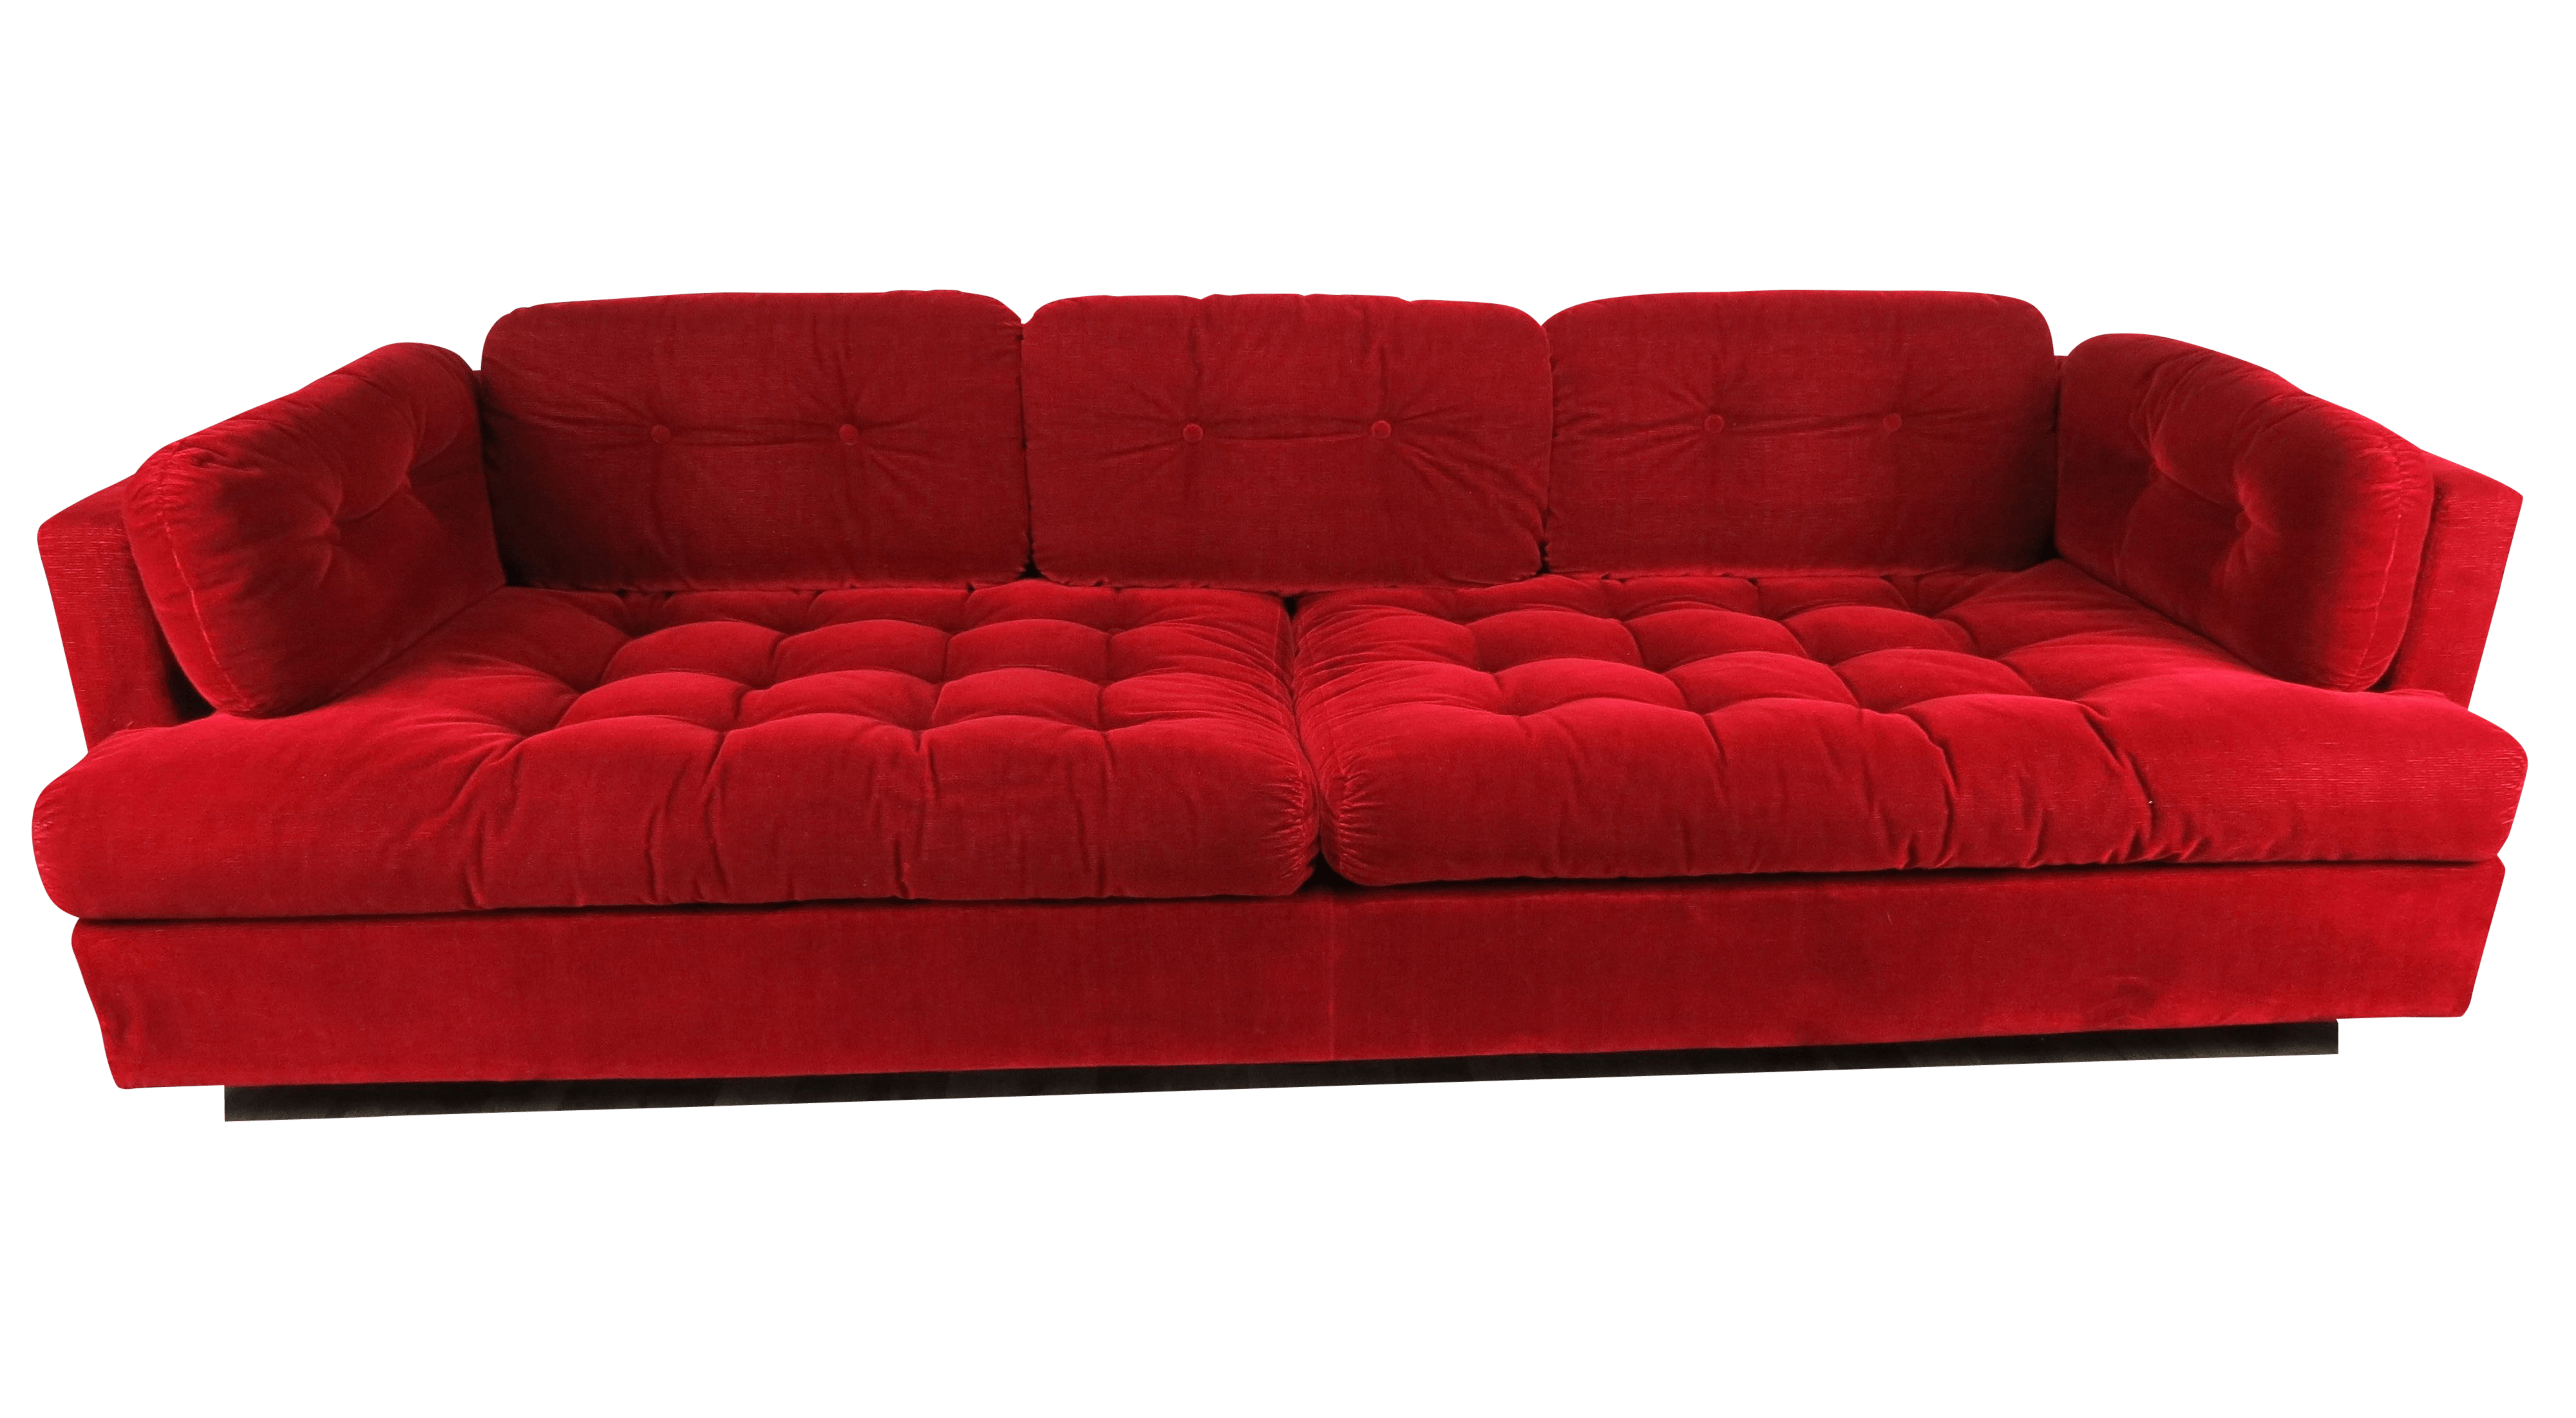 Cord Sofa 1960s Mid Century Modern Lipstick Red Button Tufted